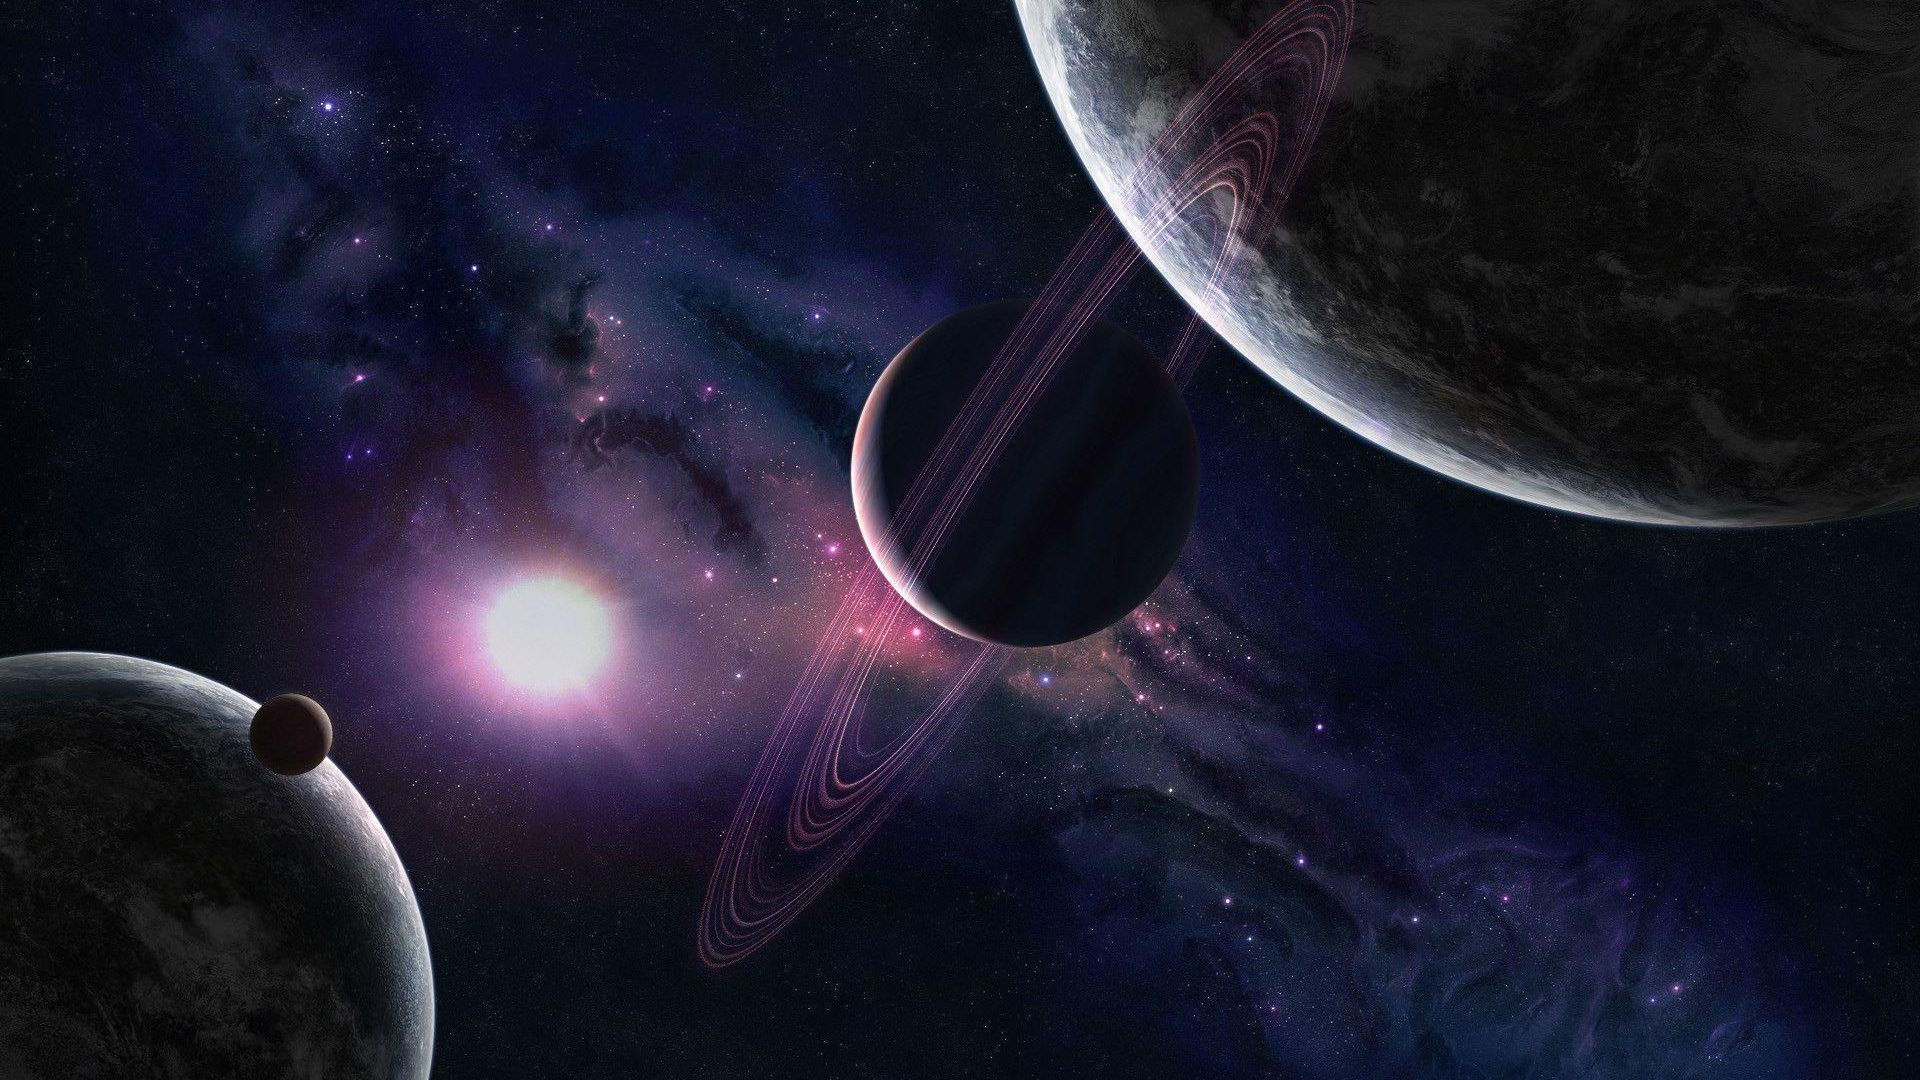 1920x1080 - Planets Wallpapers 24